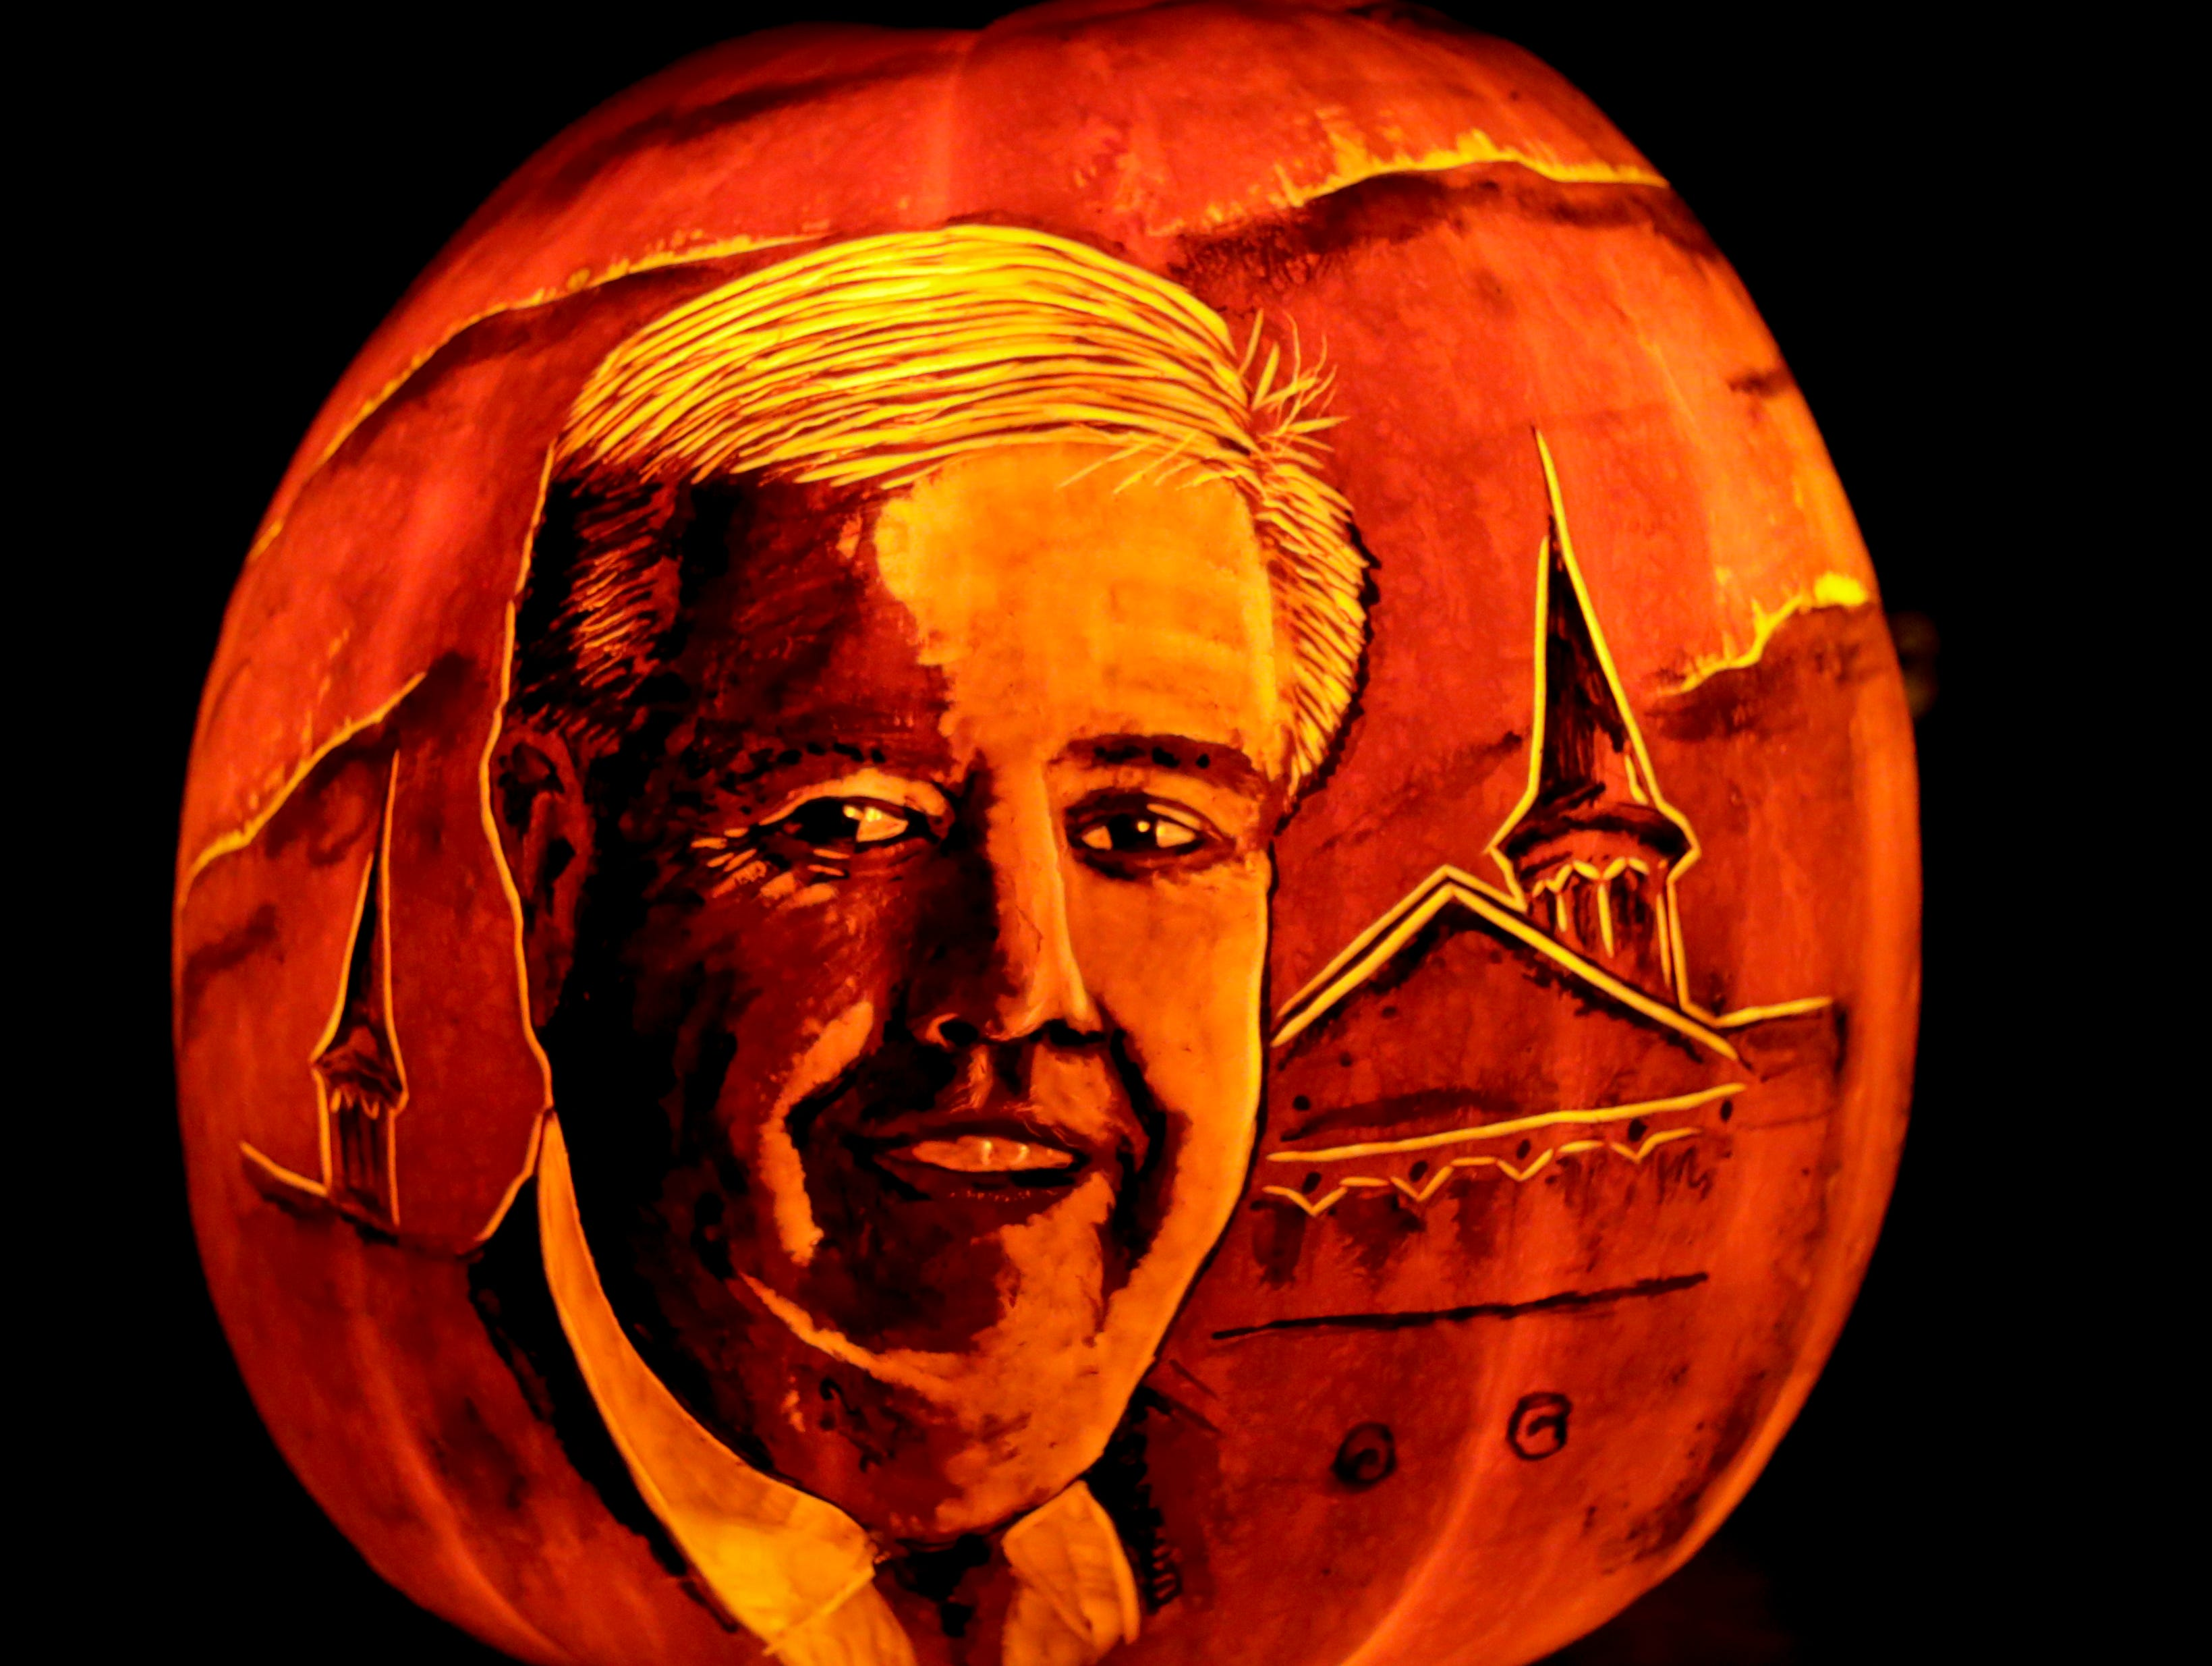 The late, great John Asher appears on a pumpkin at this year's Jack O' Lantern Spectacular. Oct. 9, 2018